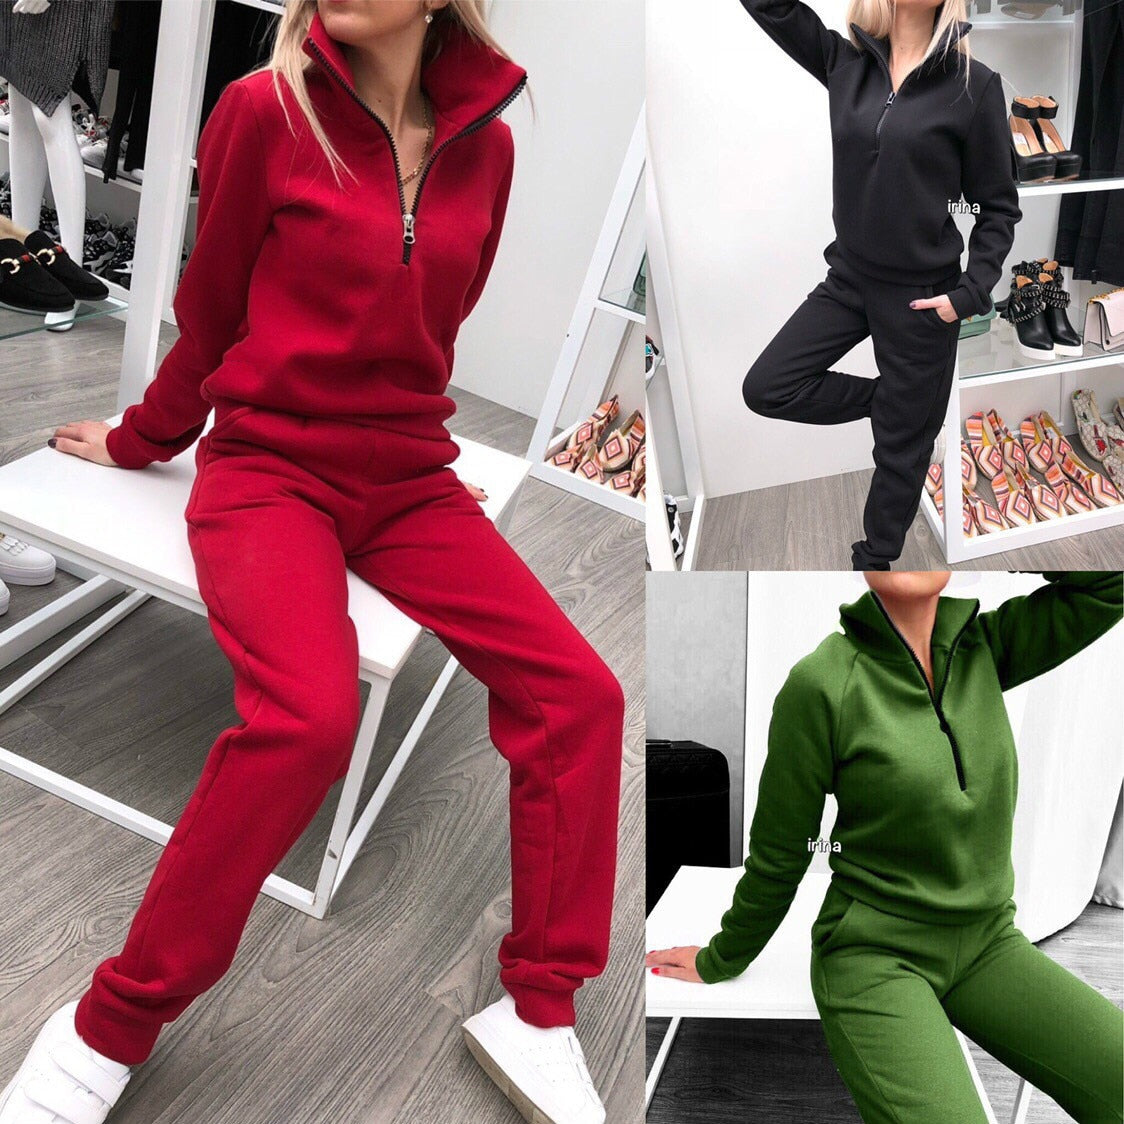 New Autumn Women's Casual Knitting Cashmere Sports